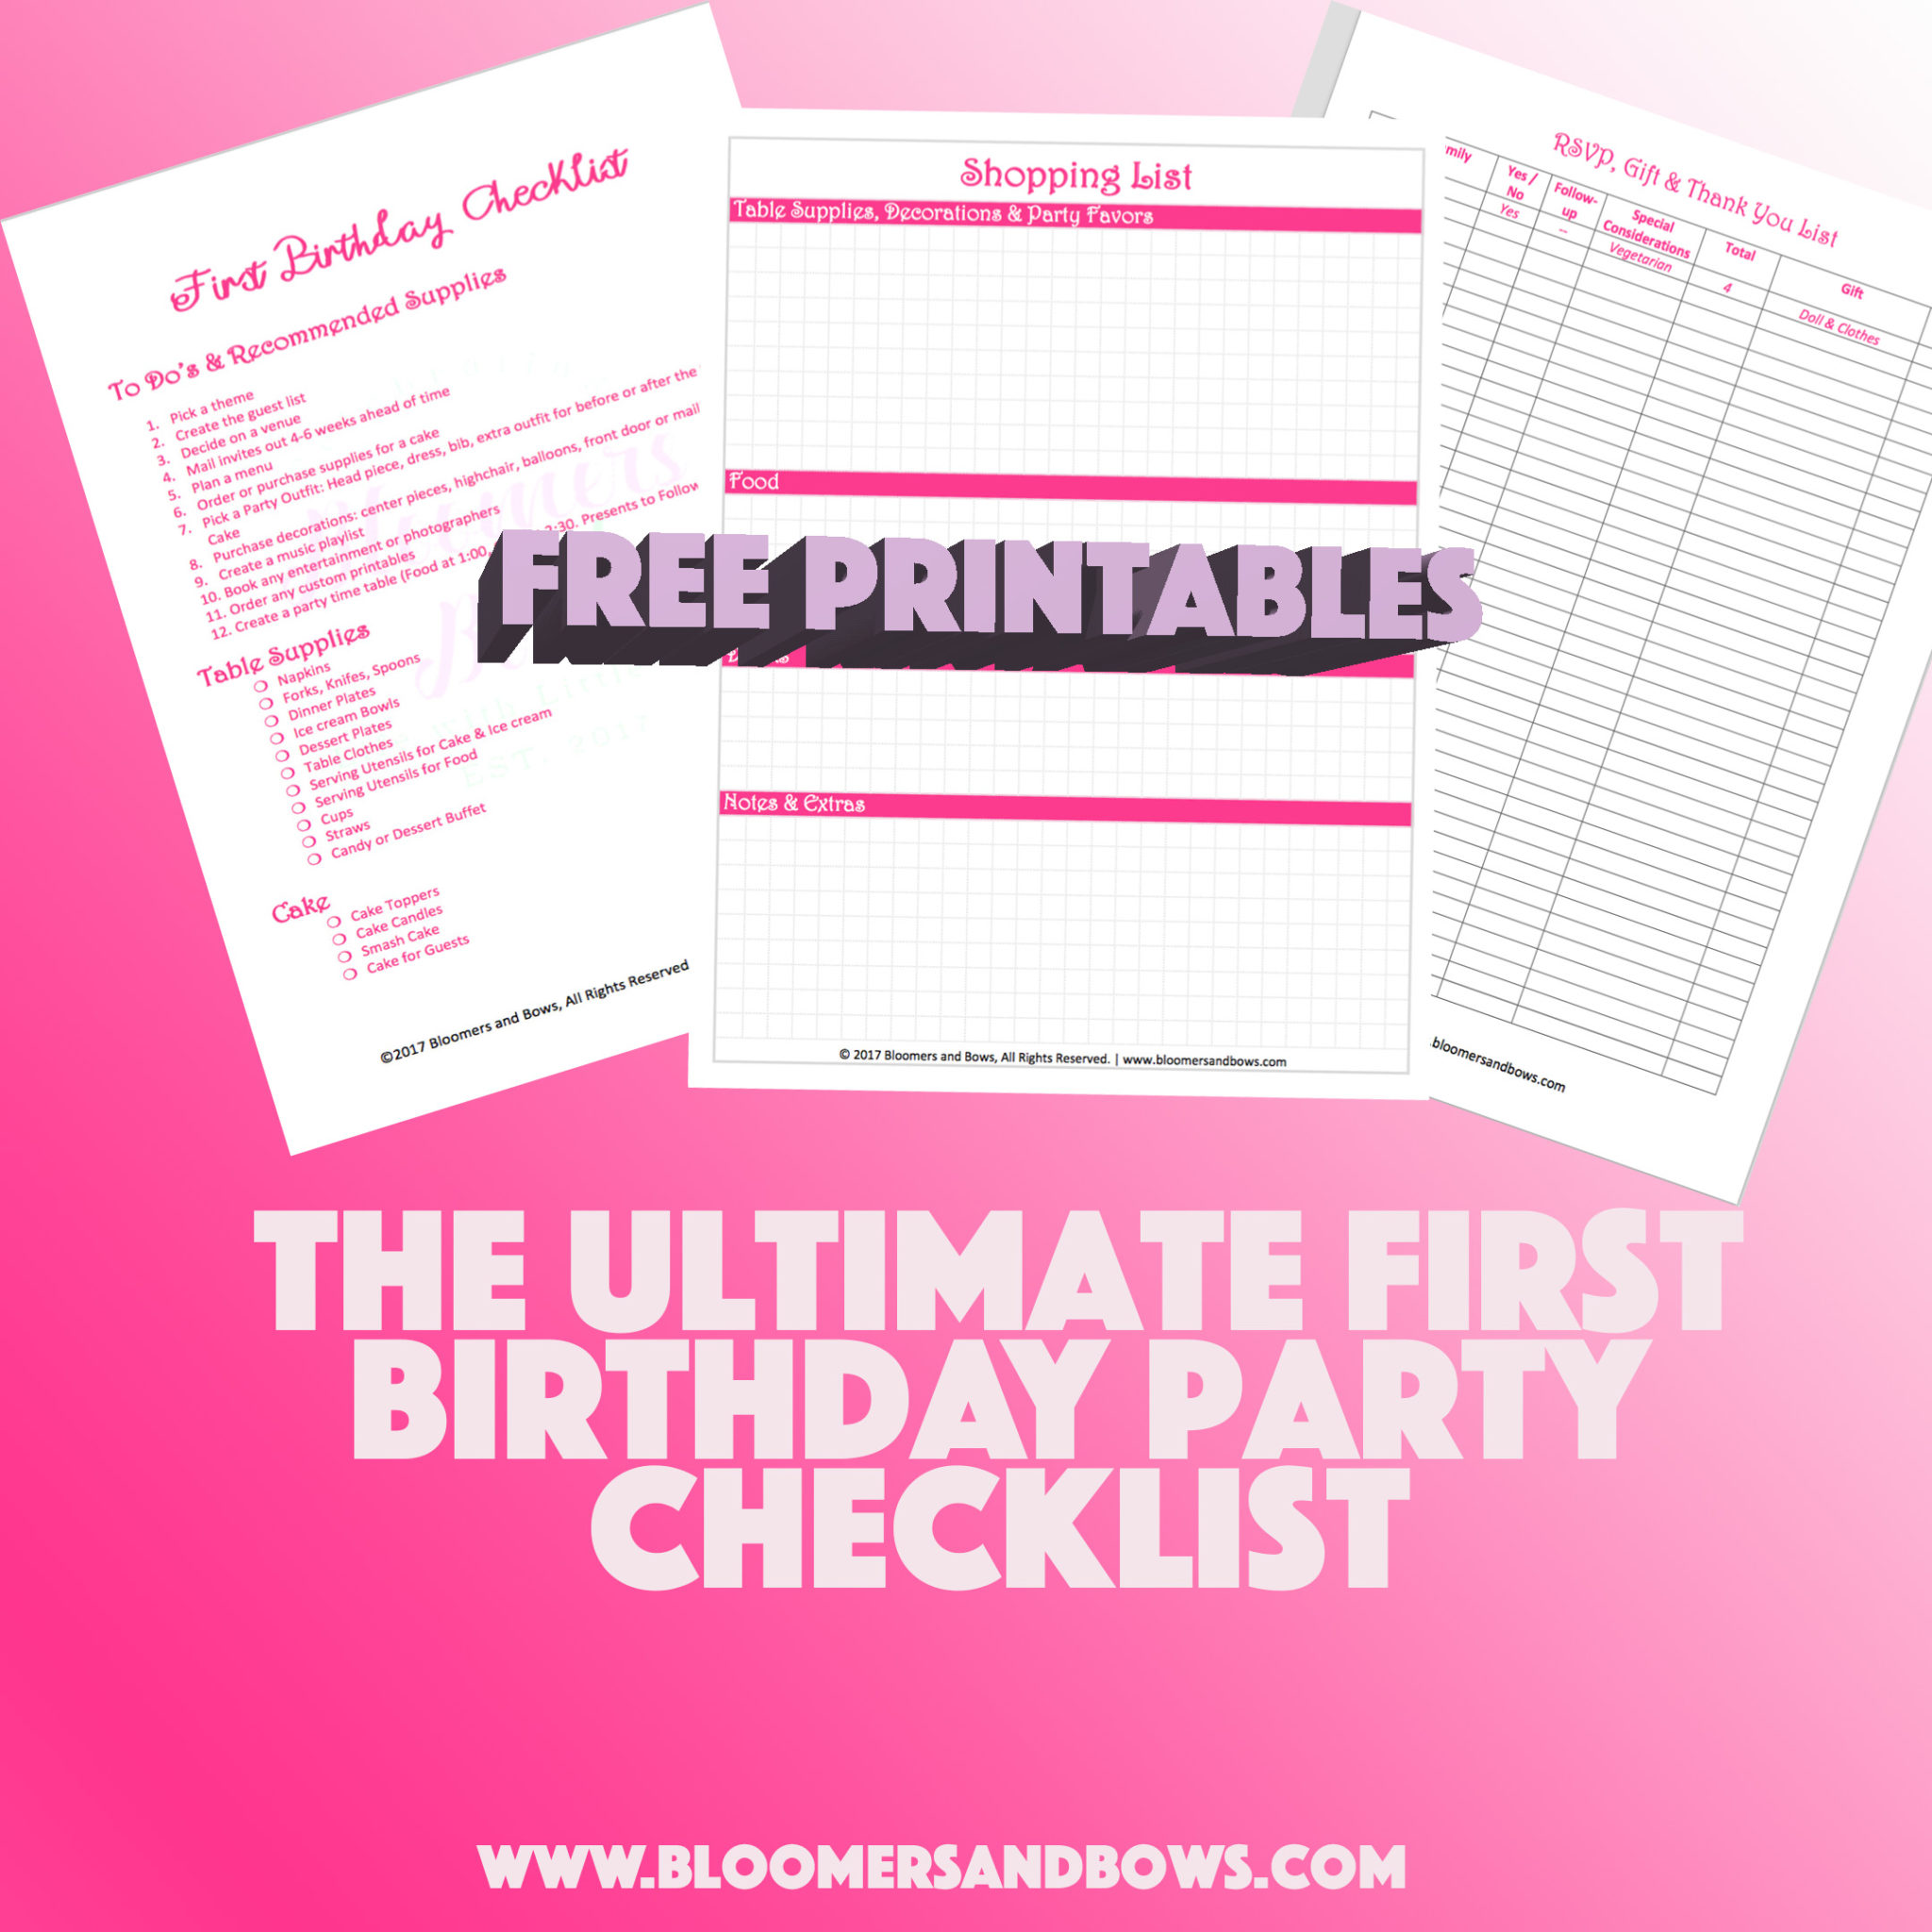 The Ultimate First Birthday Party Checklist